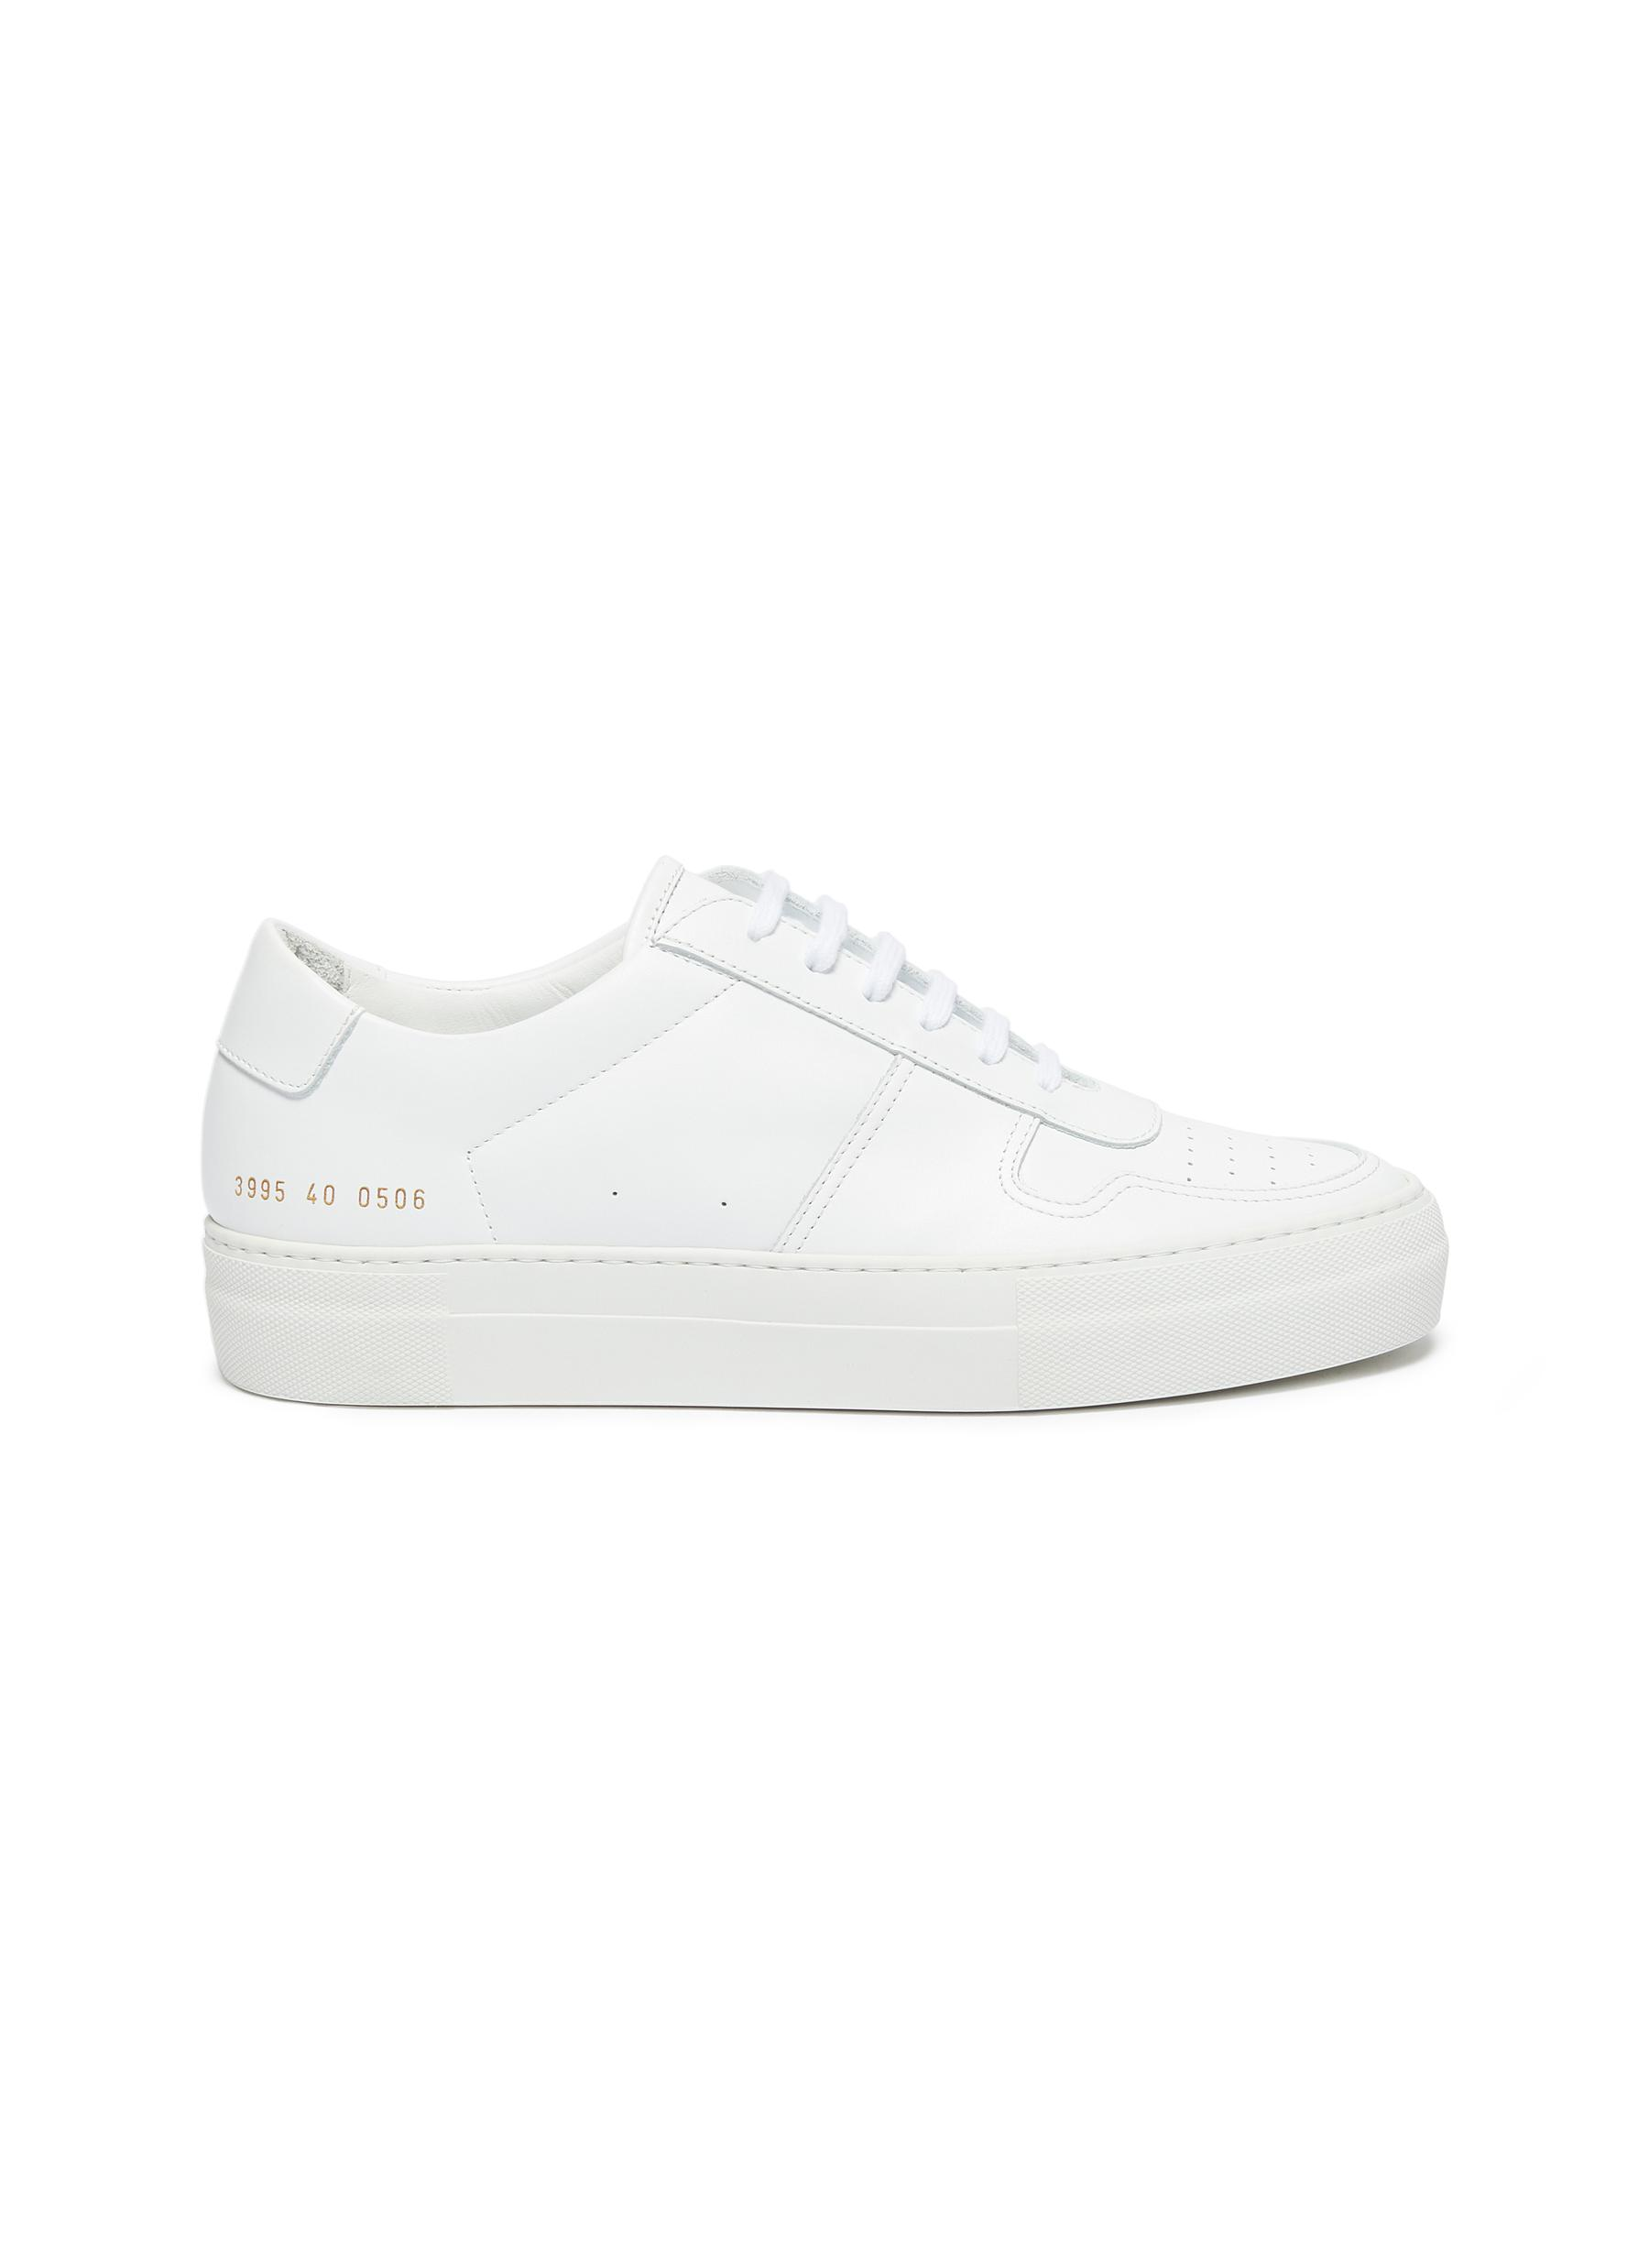 B Ball platform leather sneakers by Common Projects